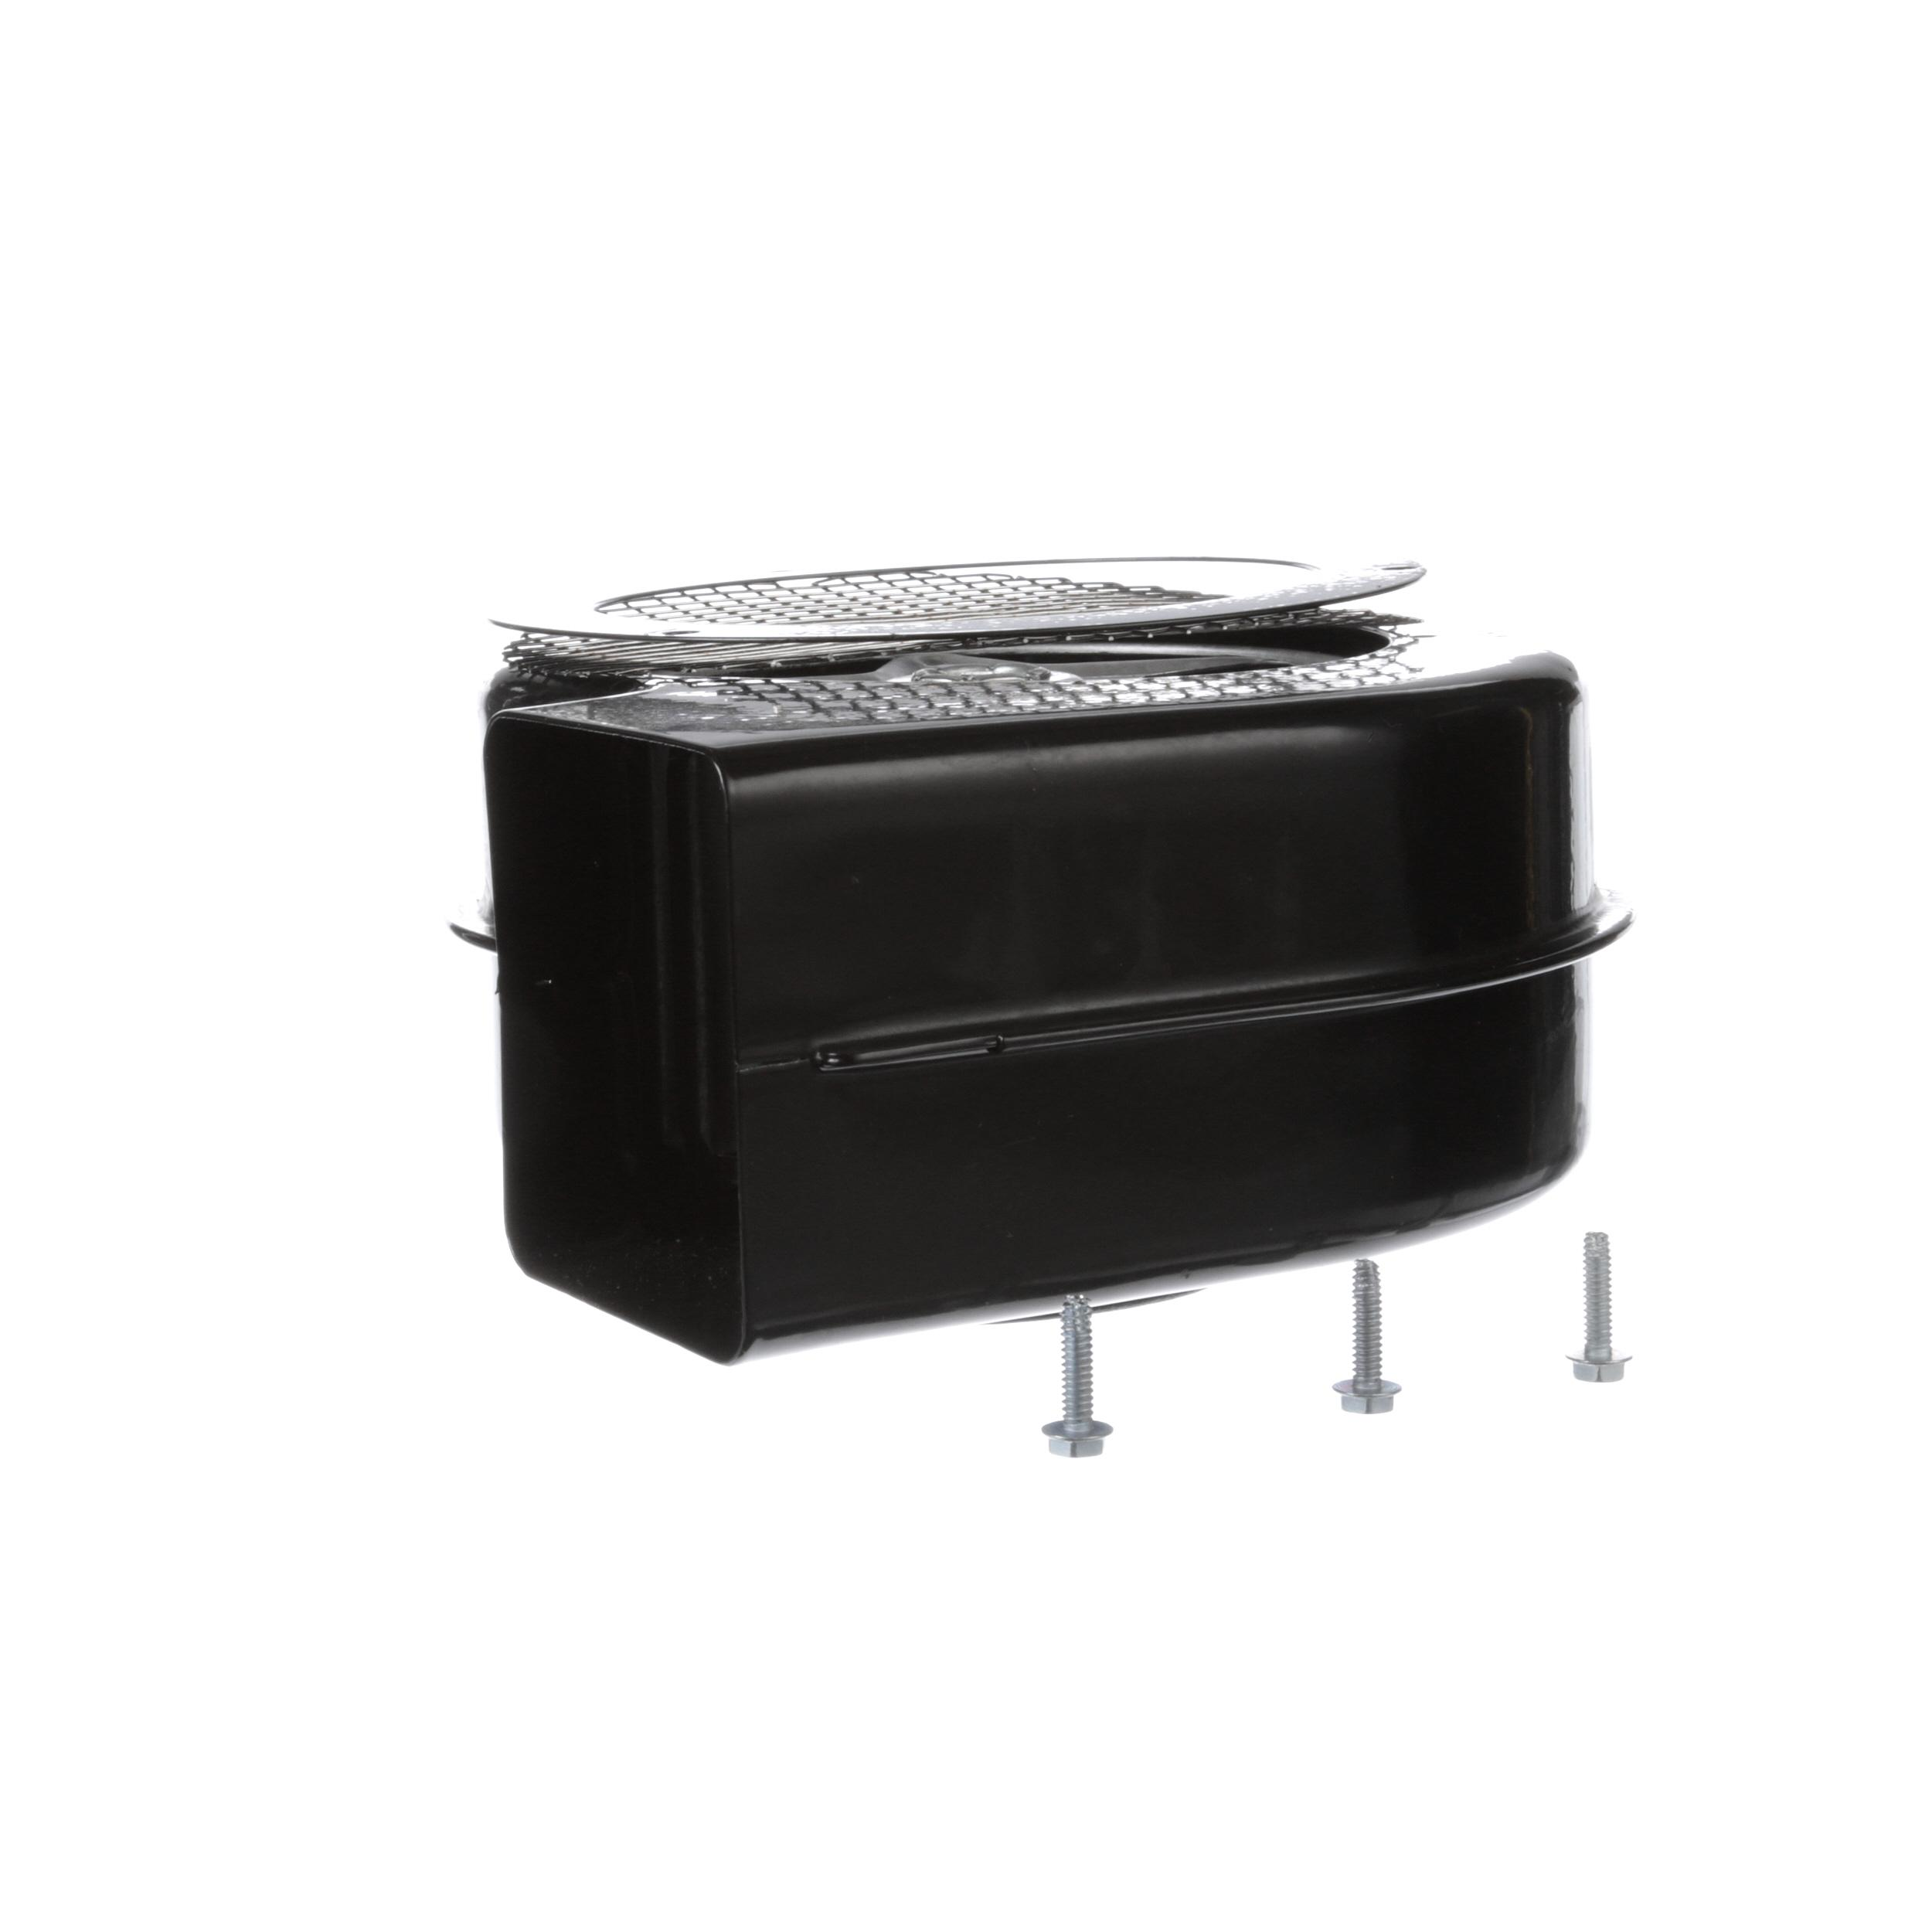 GOLD MEDAL PRODUCTS CO. BLOWER WARMER 120V